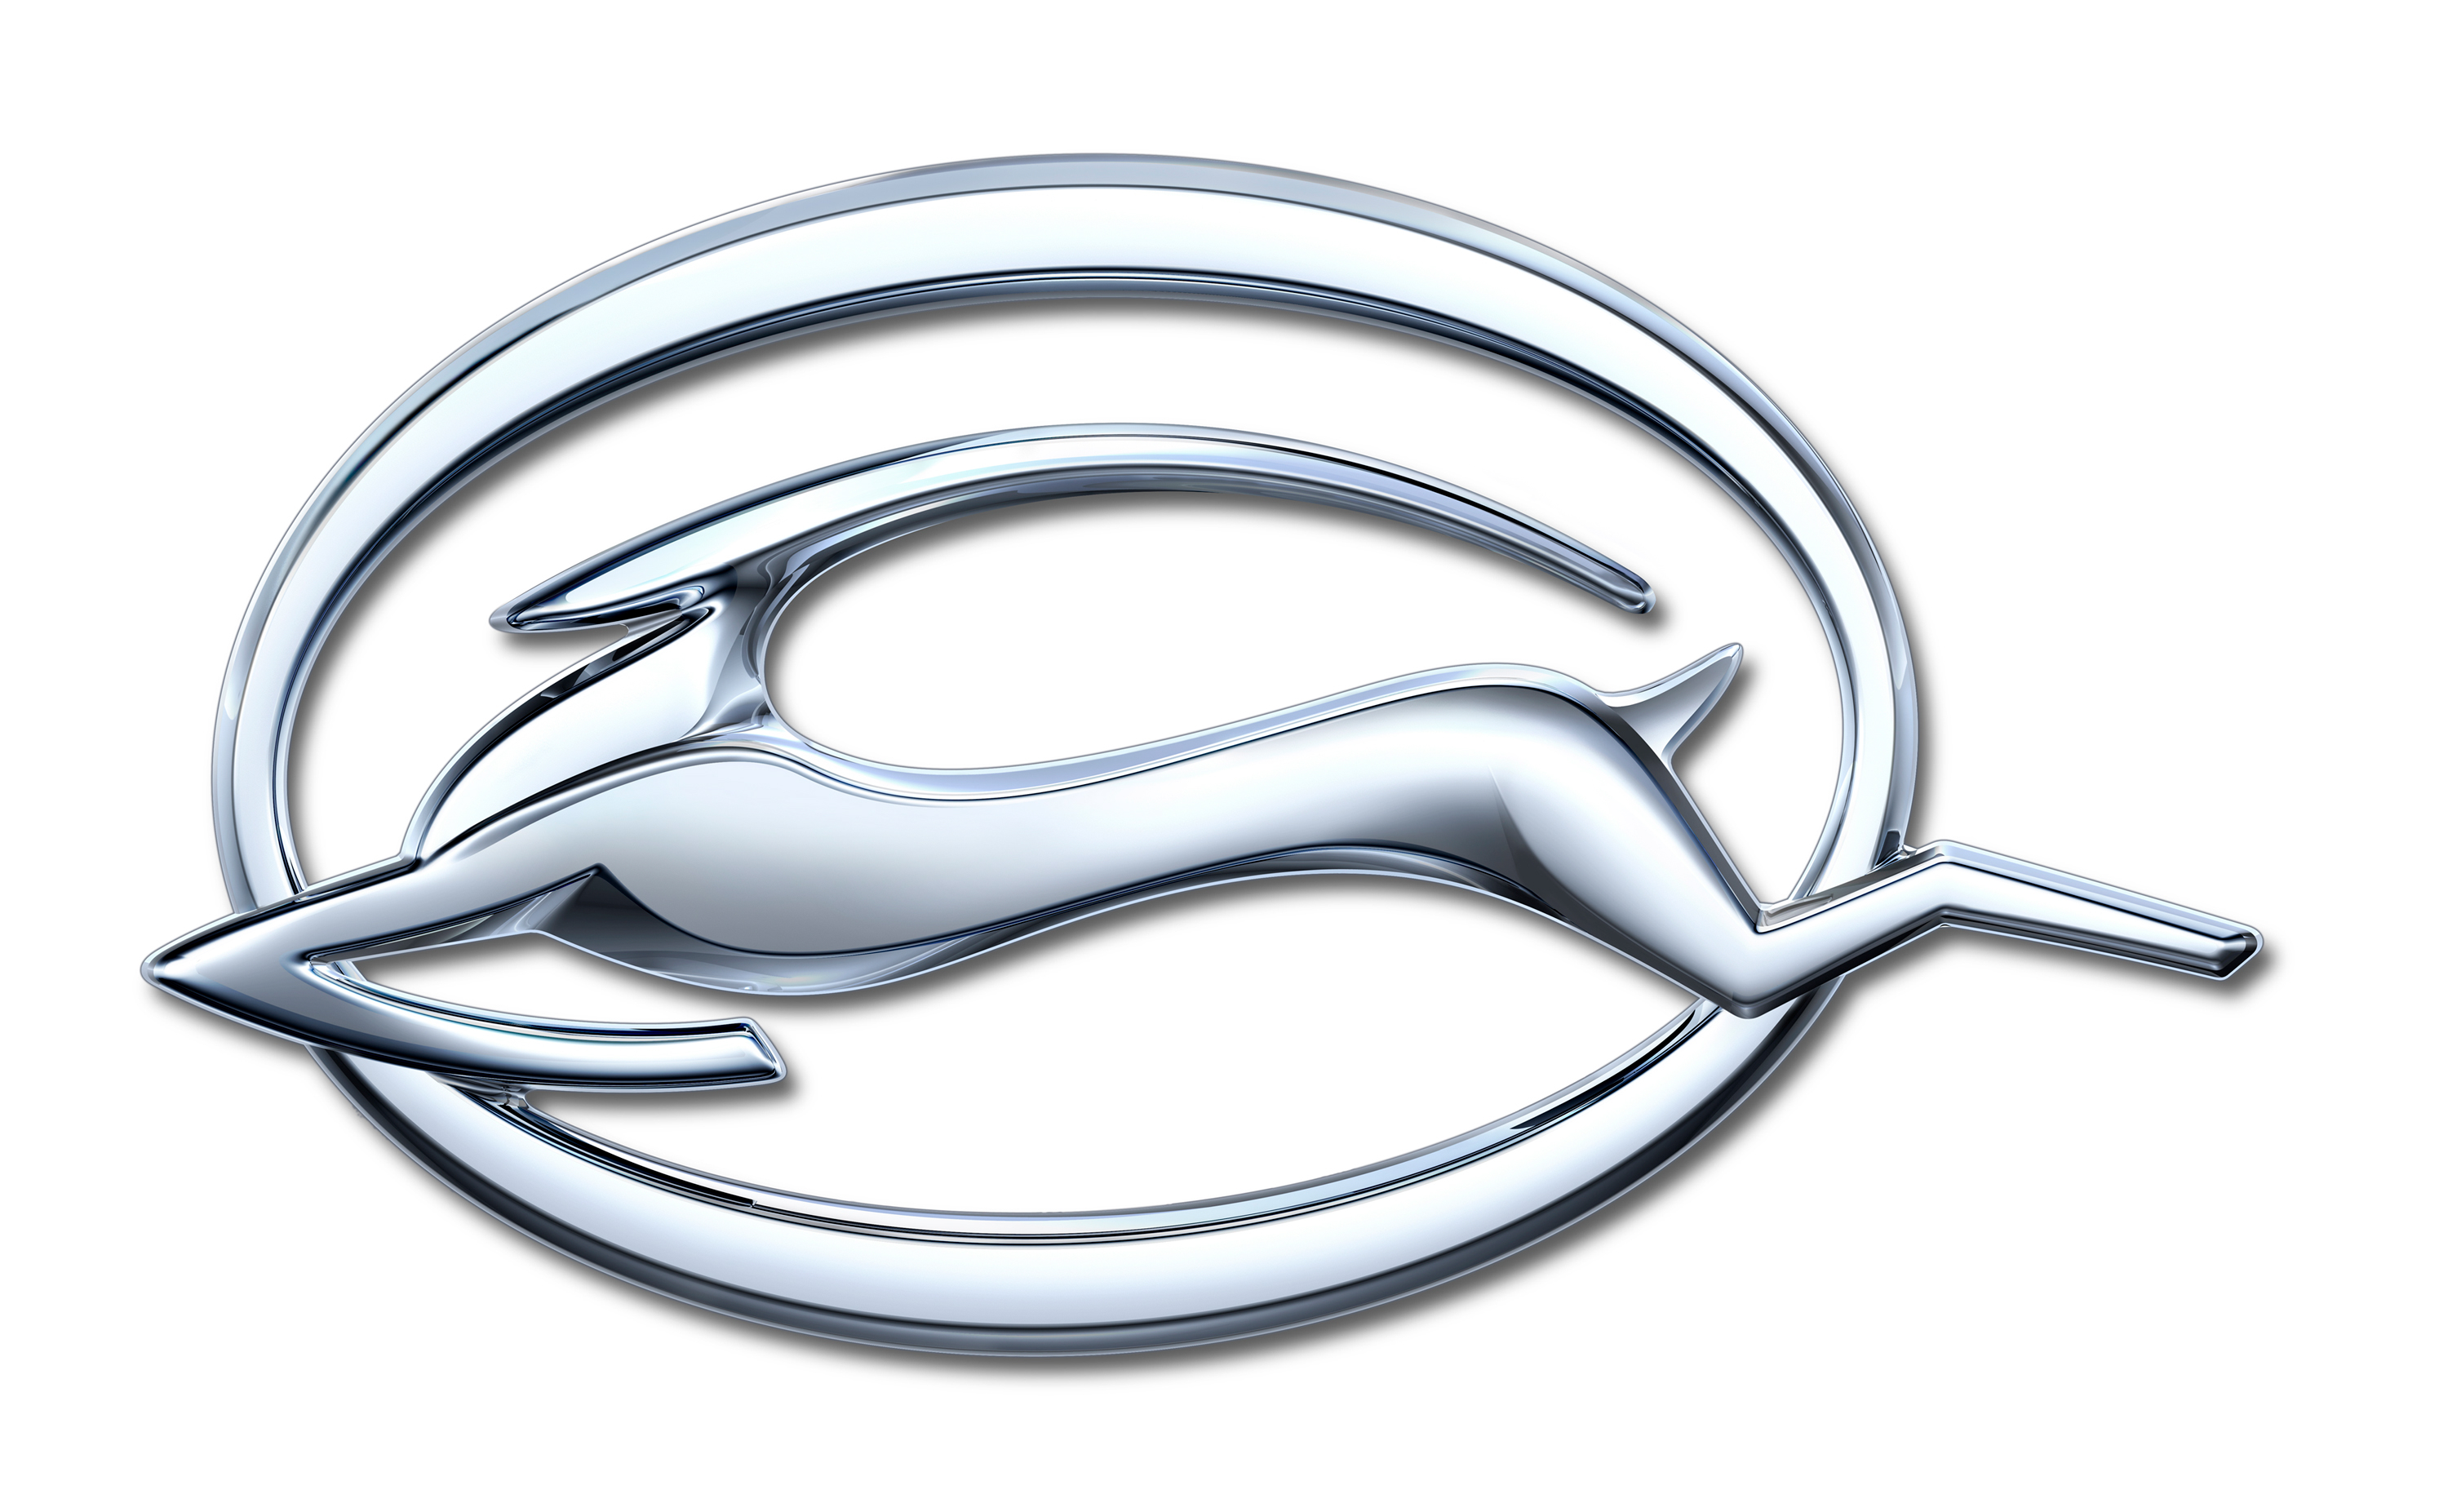 Impala Emblem Design Leaps Forward With New Model